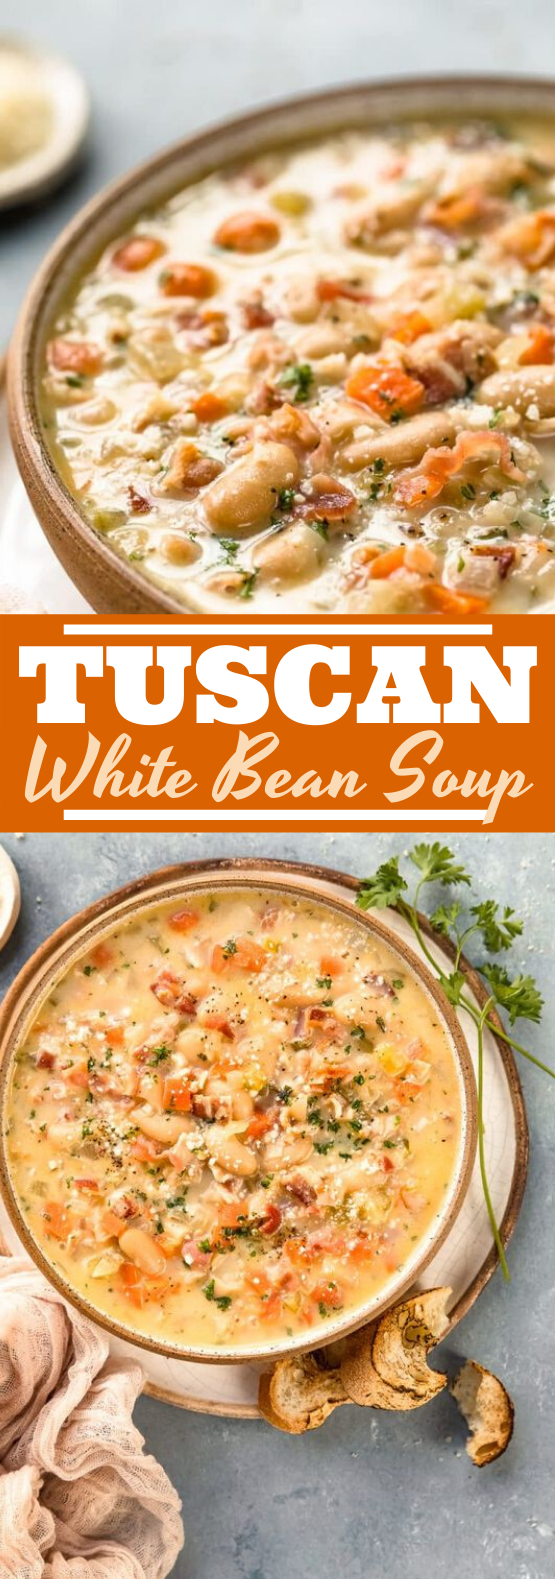 Tuscan White Bean Soup #dinner #soup #comfortfood #fall #recipes